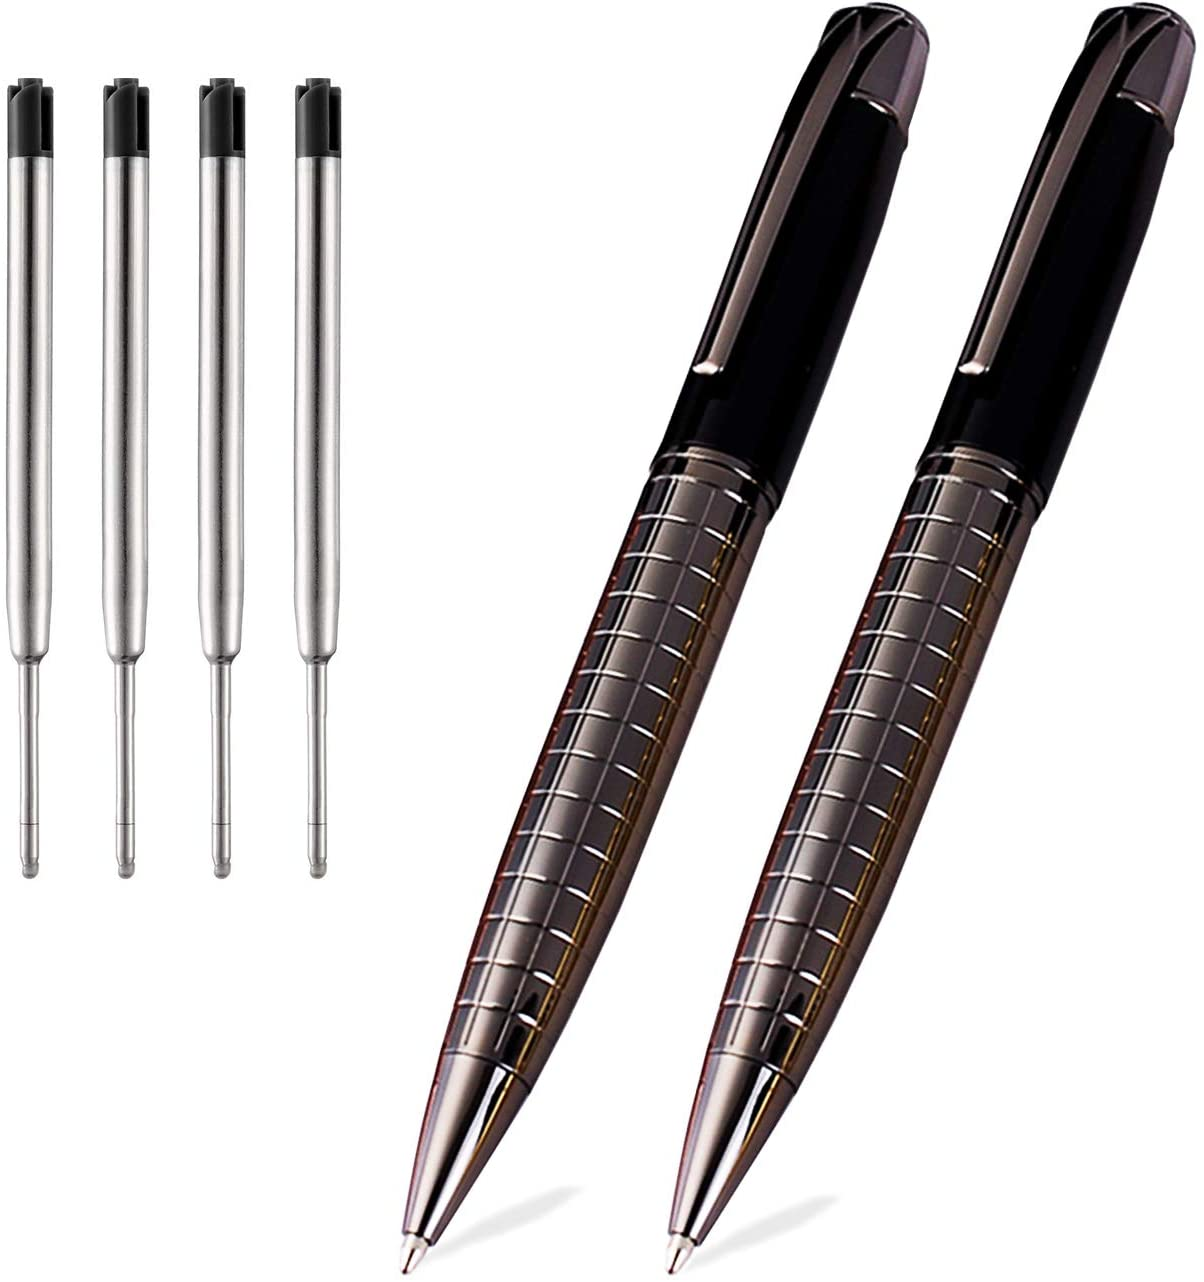 Obacle Ballpoint Pens